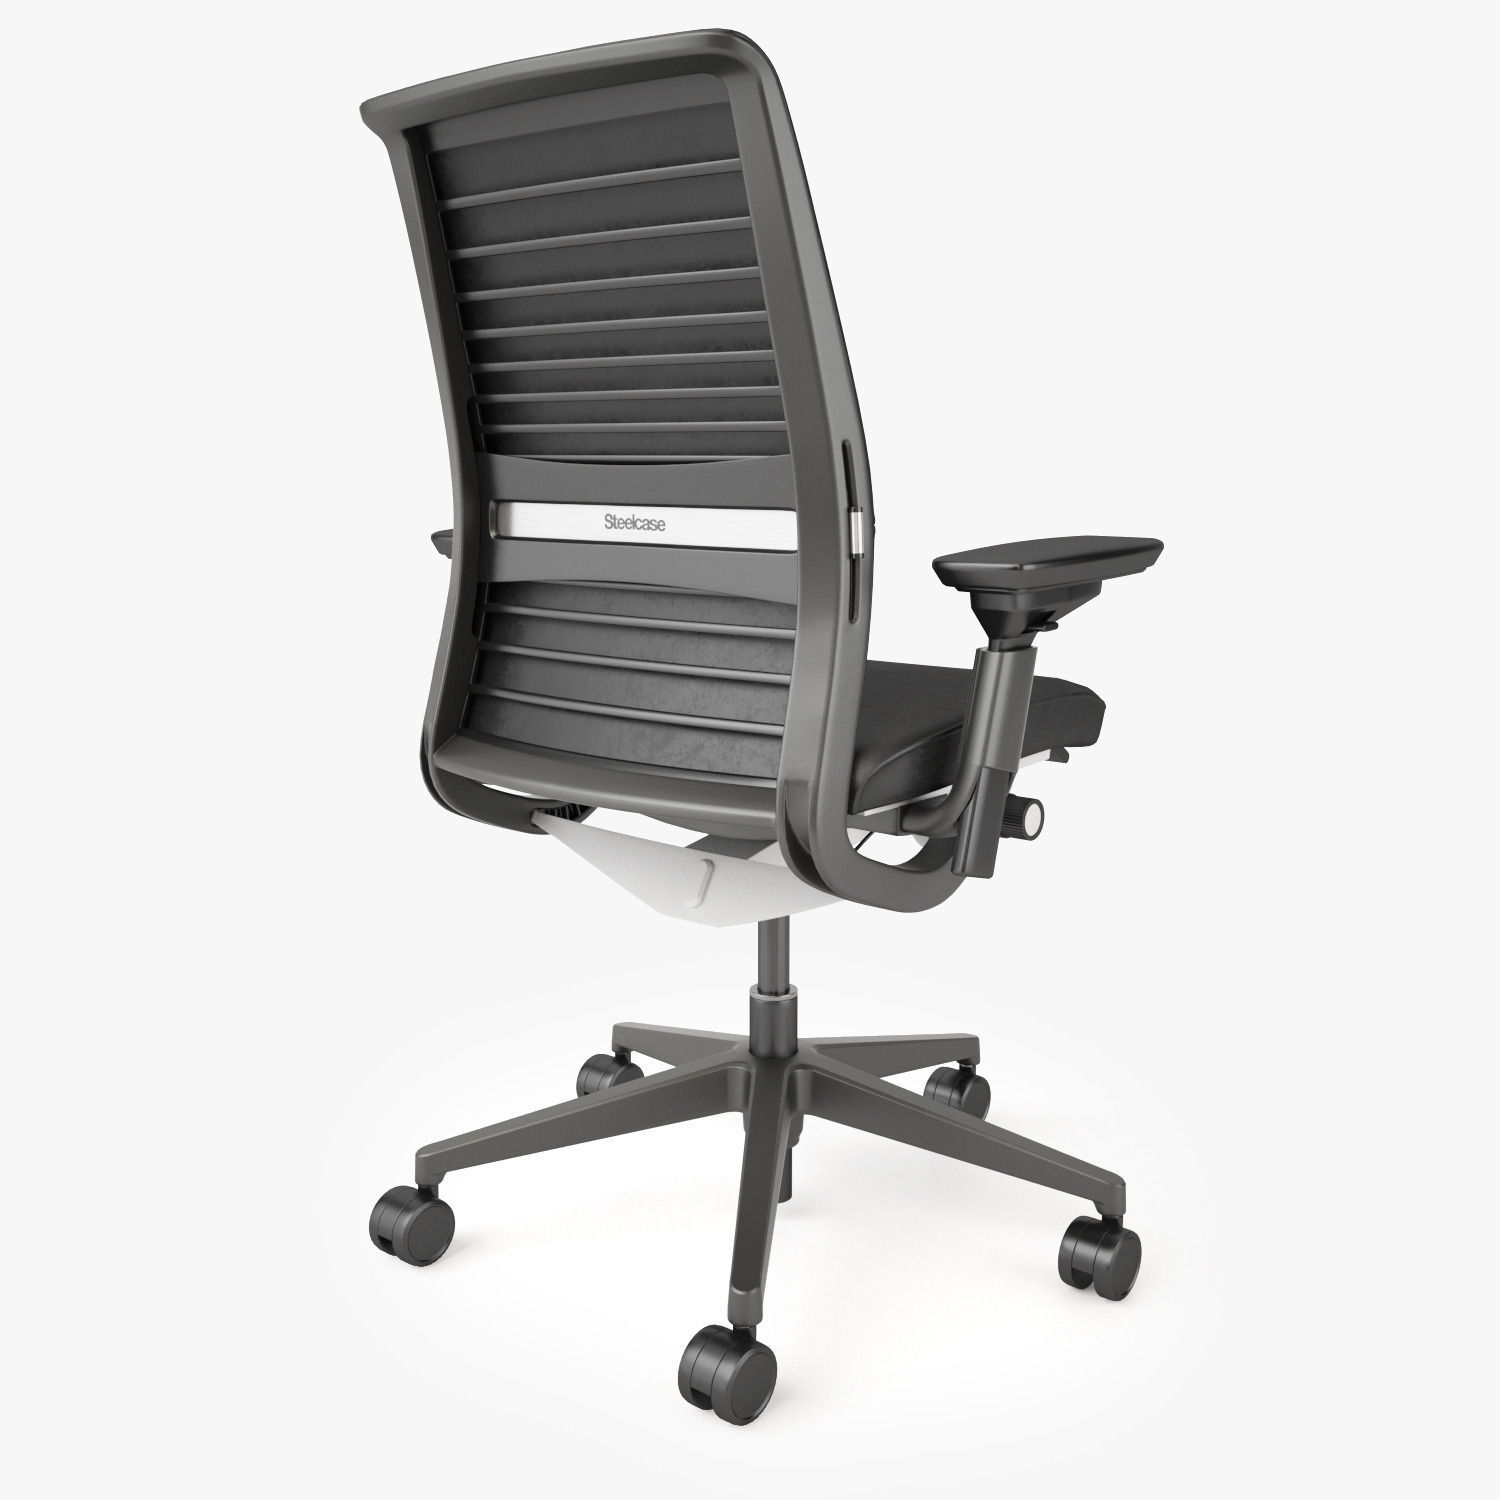 Steelcase Think Operator Chair With Coat Hanger Mesh Back fice